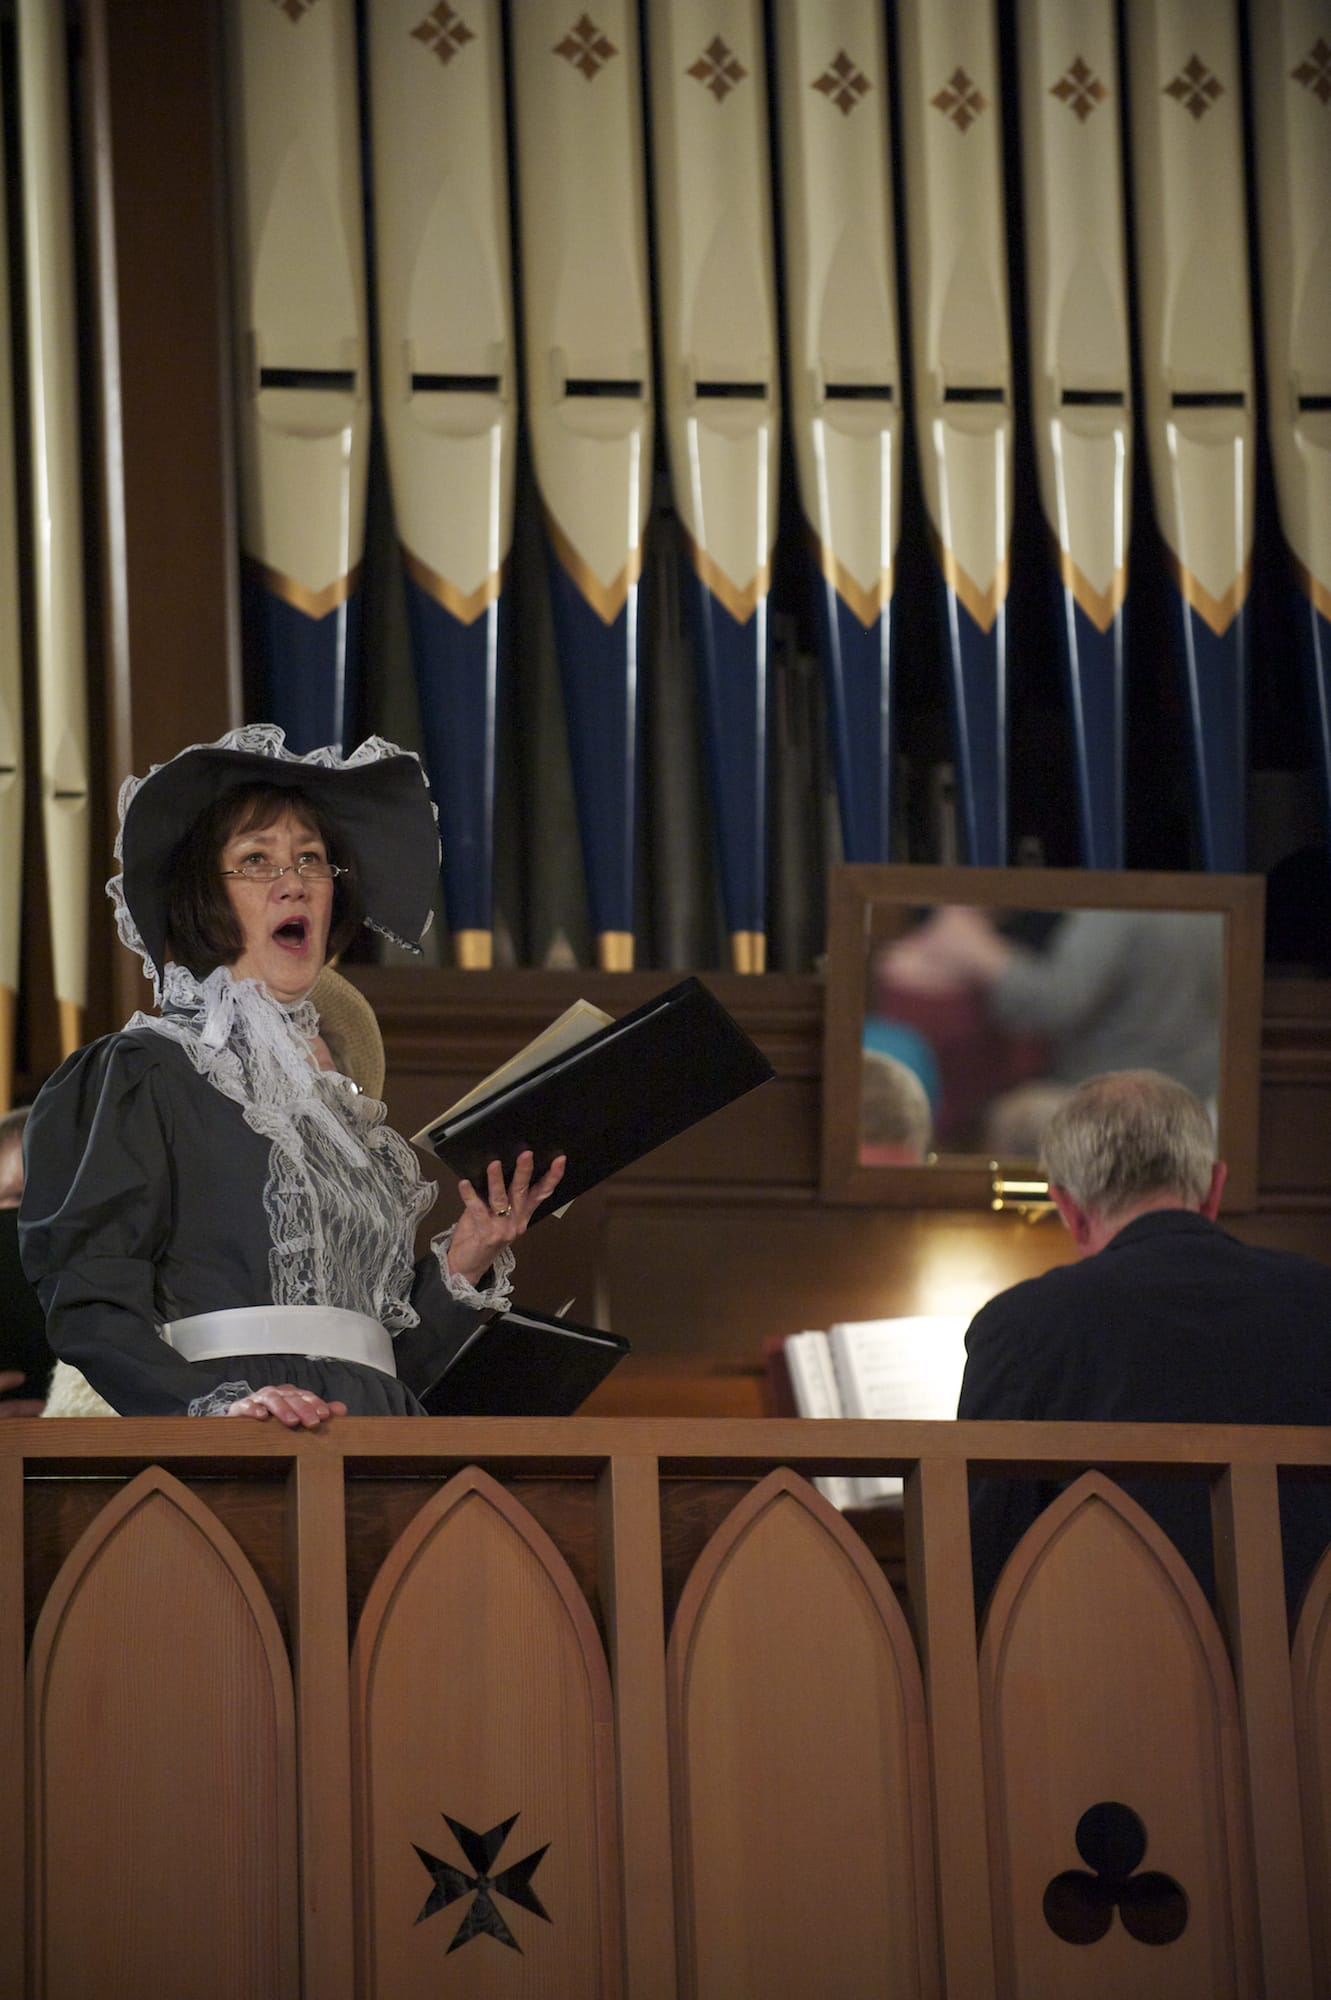 St. Luke's Episcopal Church choir member Pam Goodlett sings from the choir box as the church celebrates its 152nd anniversary on Sunday. The congregation used the original prayer book from 1789 and many parishioners dressed in period clothing.